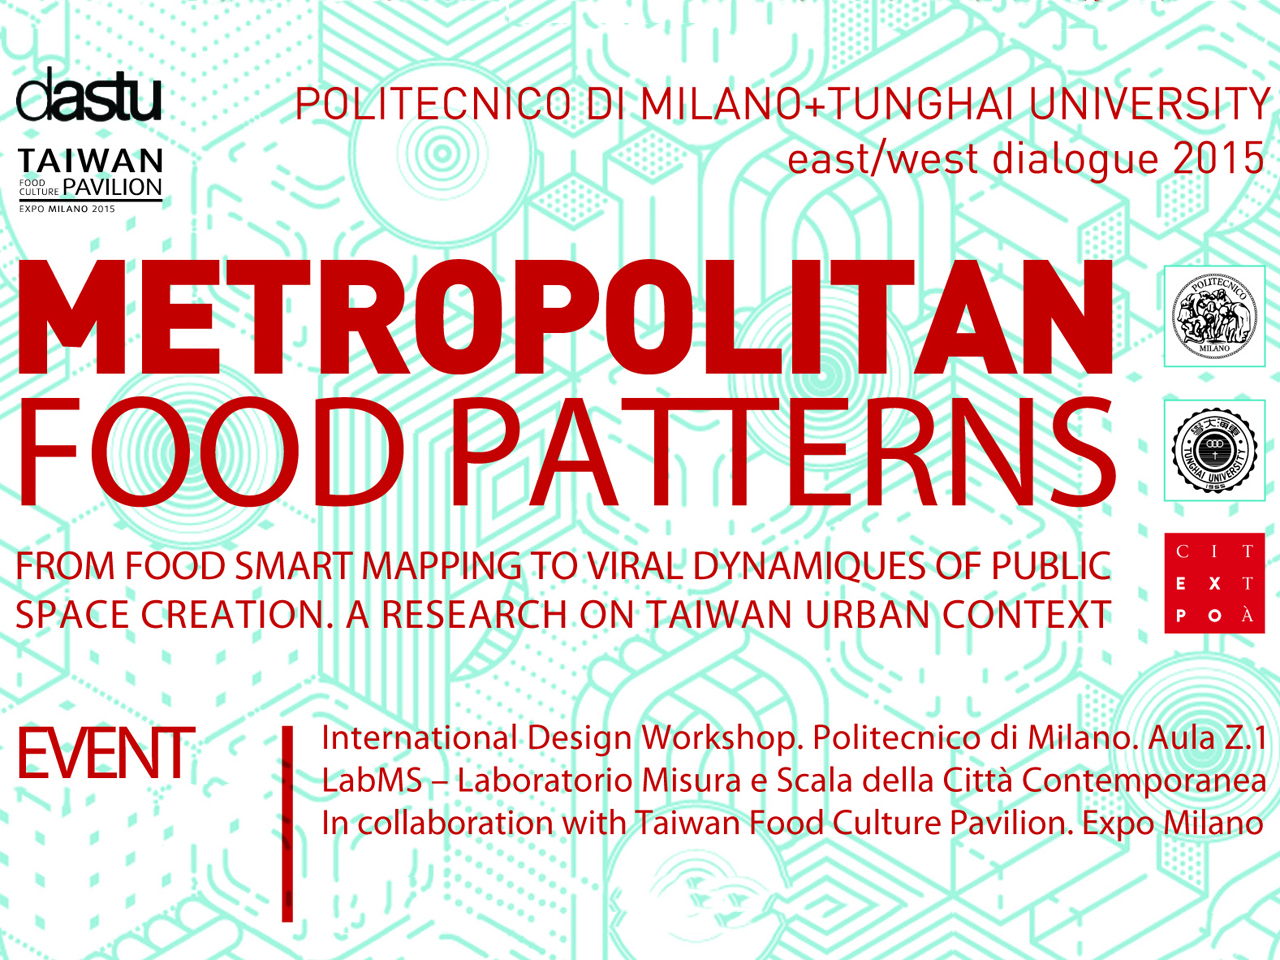 Jacob van Rijs and Hui-Hsin Liao to give workshop on 'Metropolitan Food Patterns' in Milan on July 9th